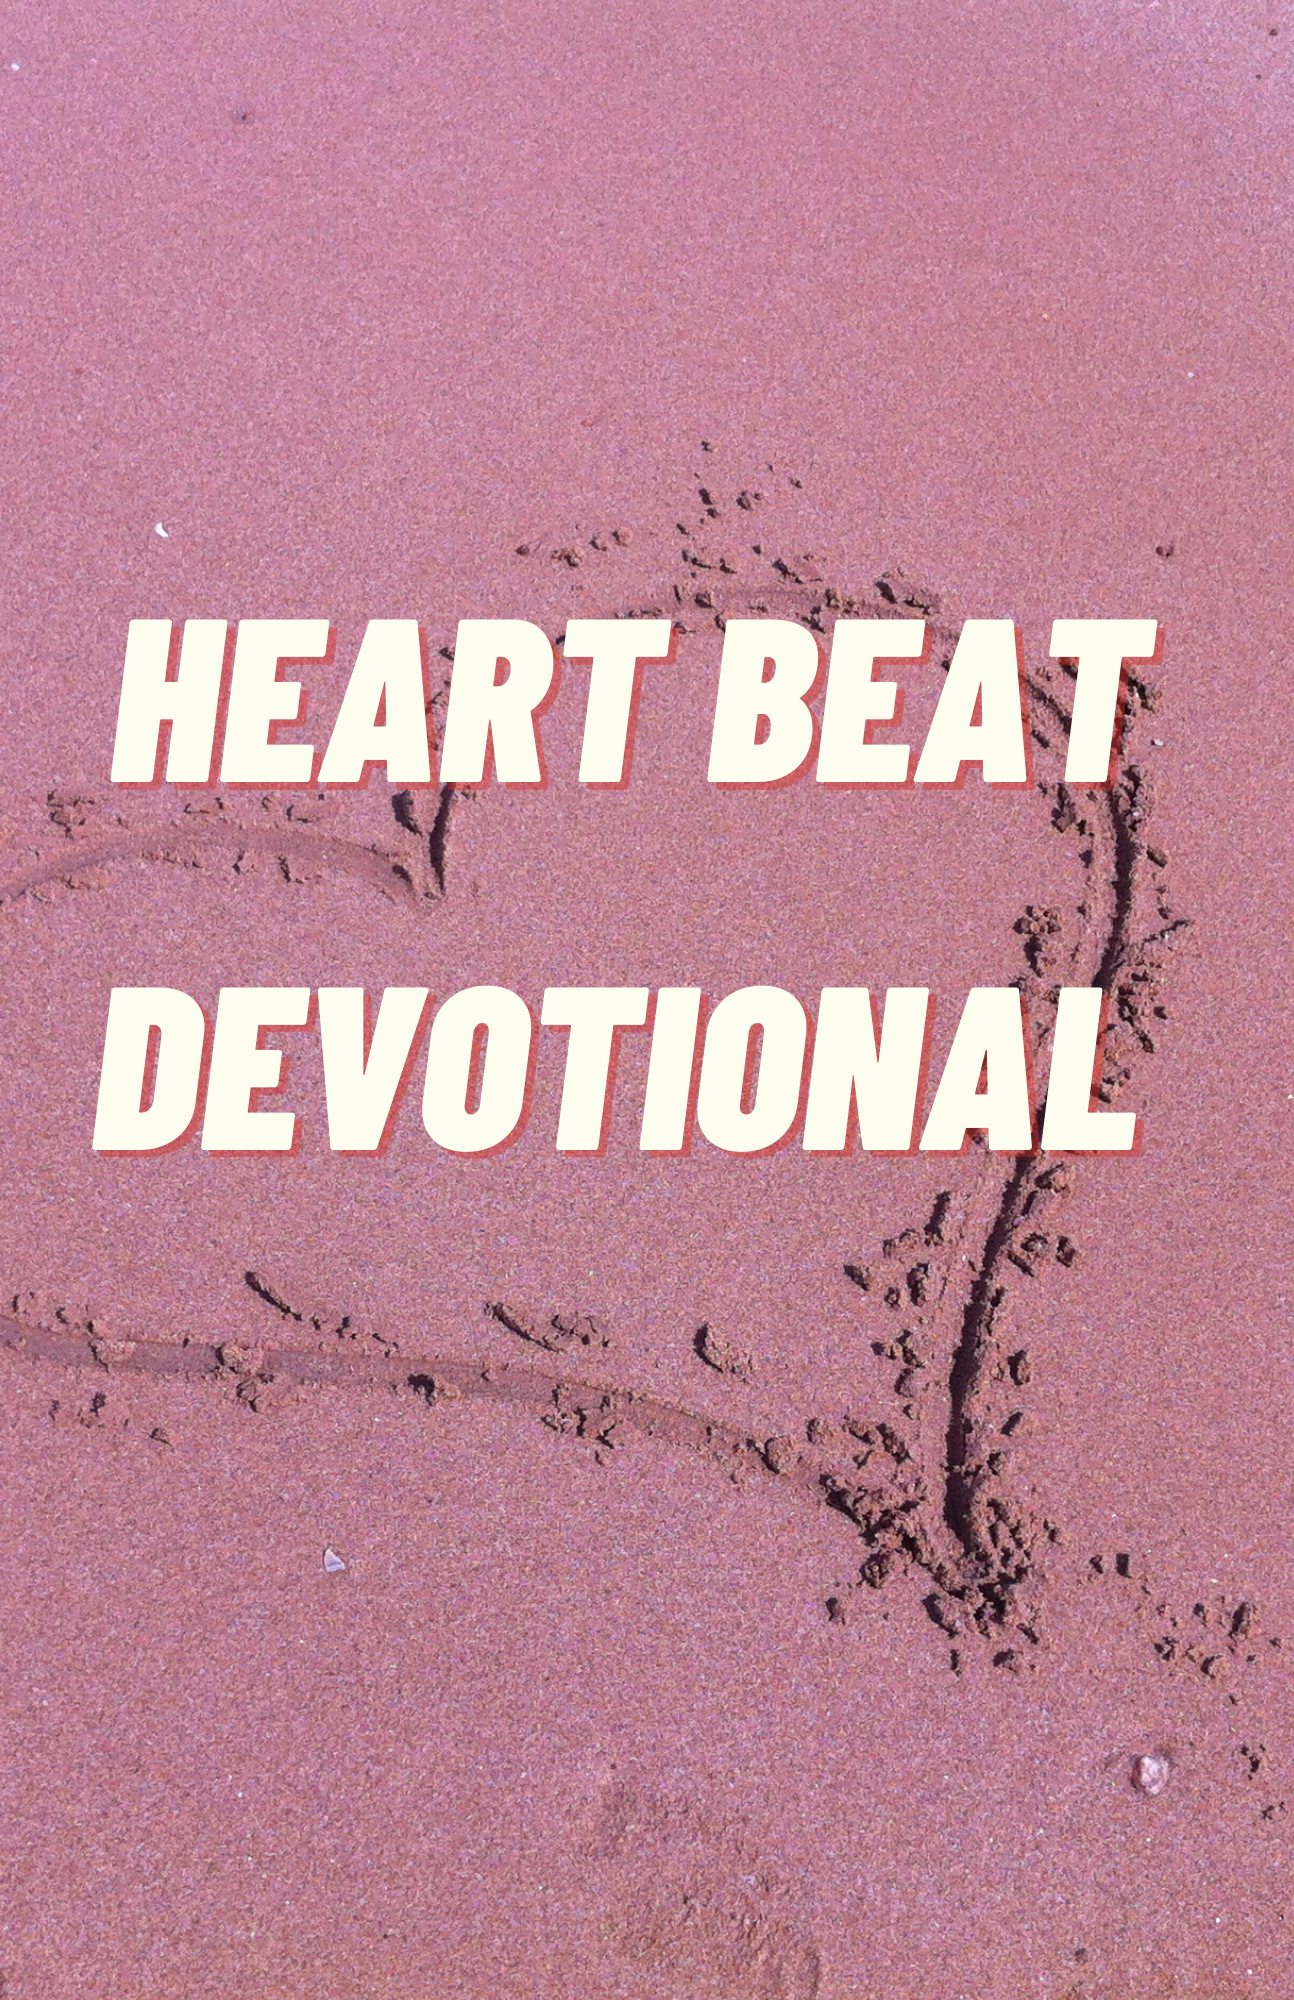 Read more about the article Heart Beat Devotional